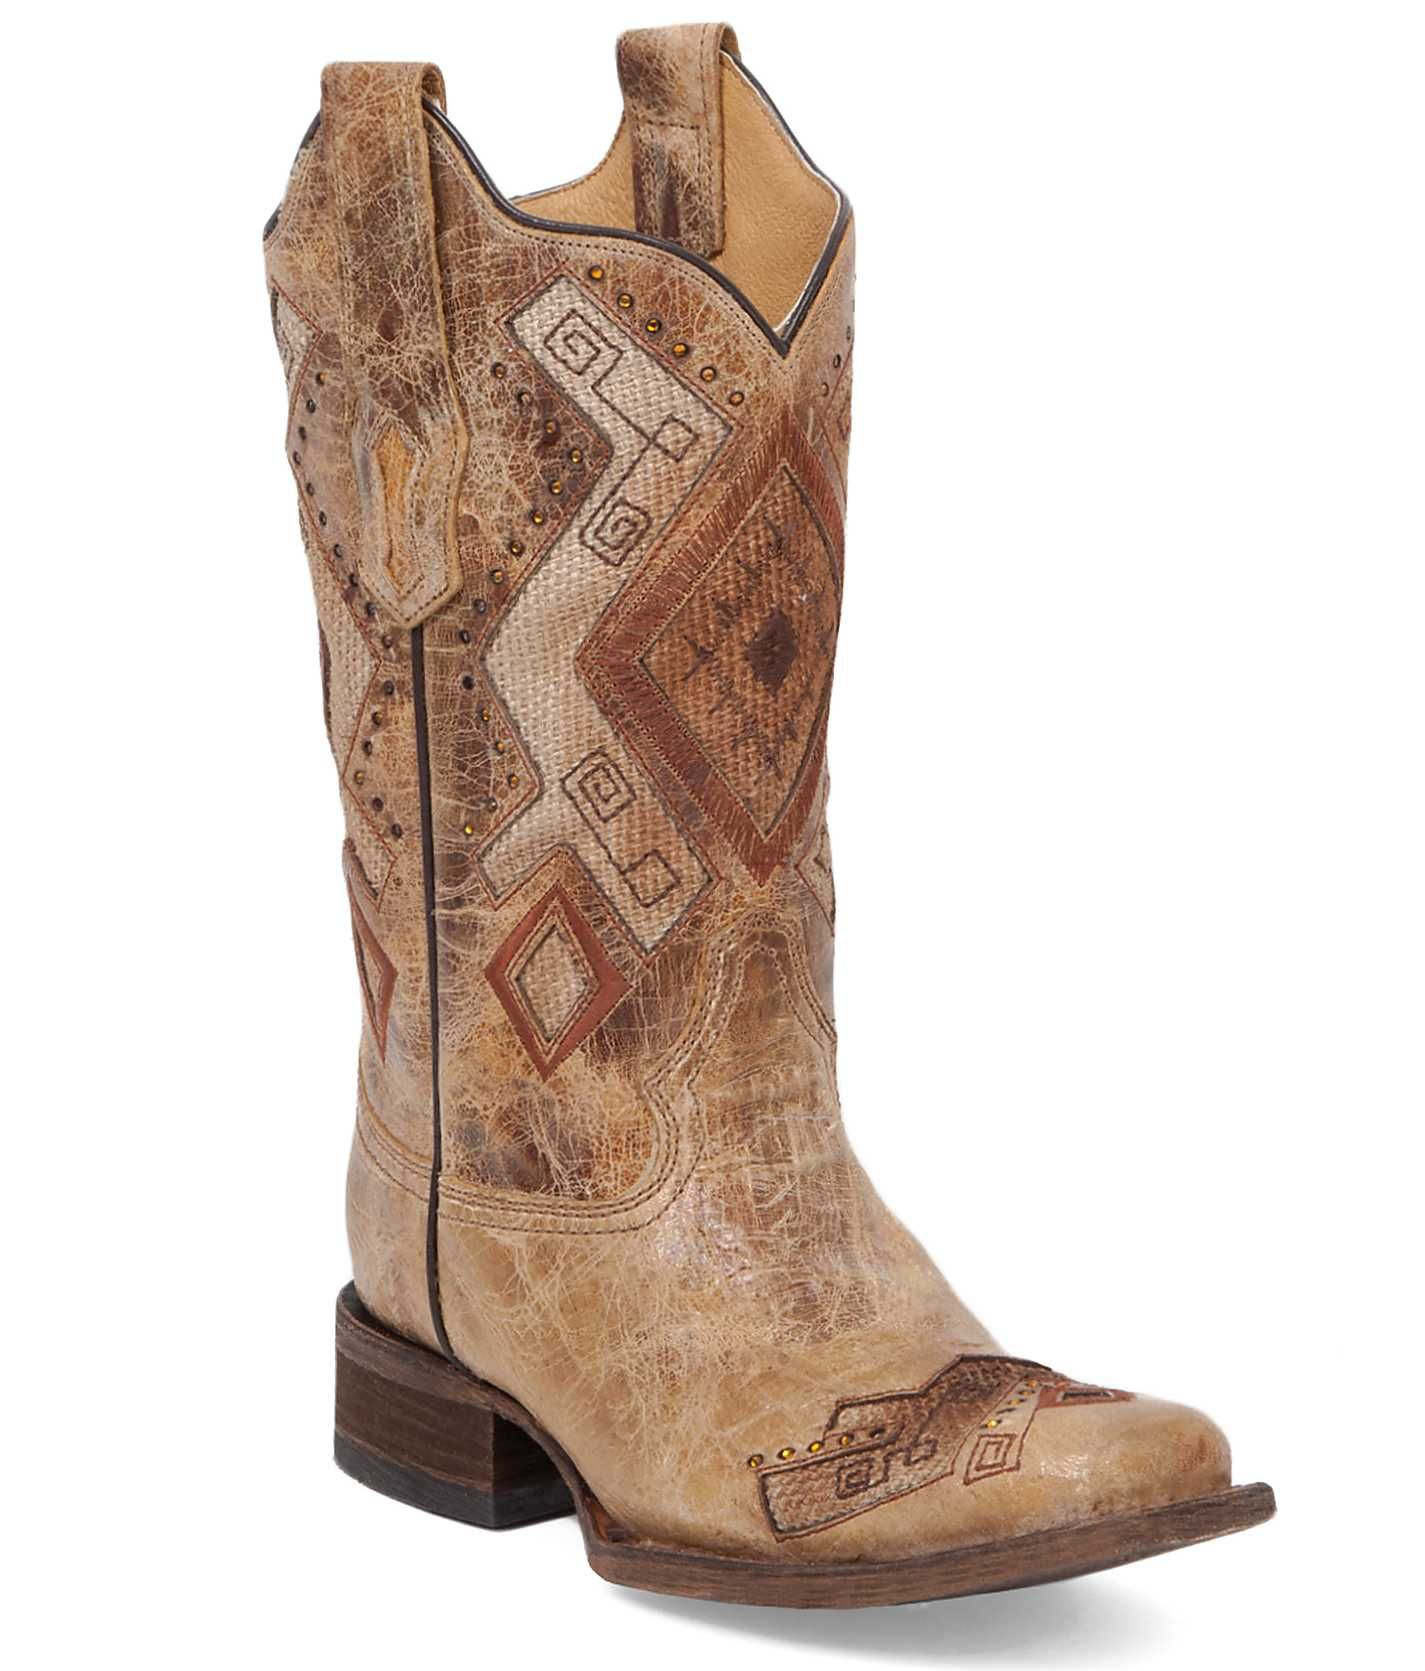 Corral Plano Square Toe Cowboy Boot Women S Shoes Buckle Boots Girls Boots Cowboy Boots